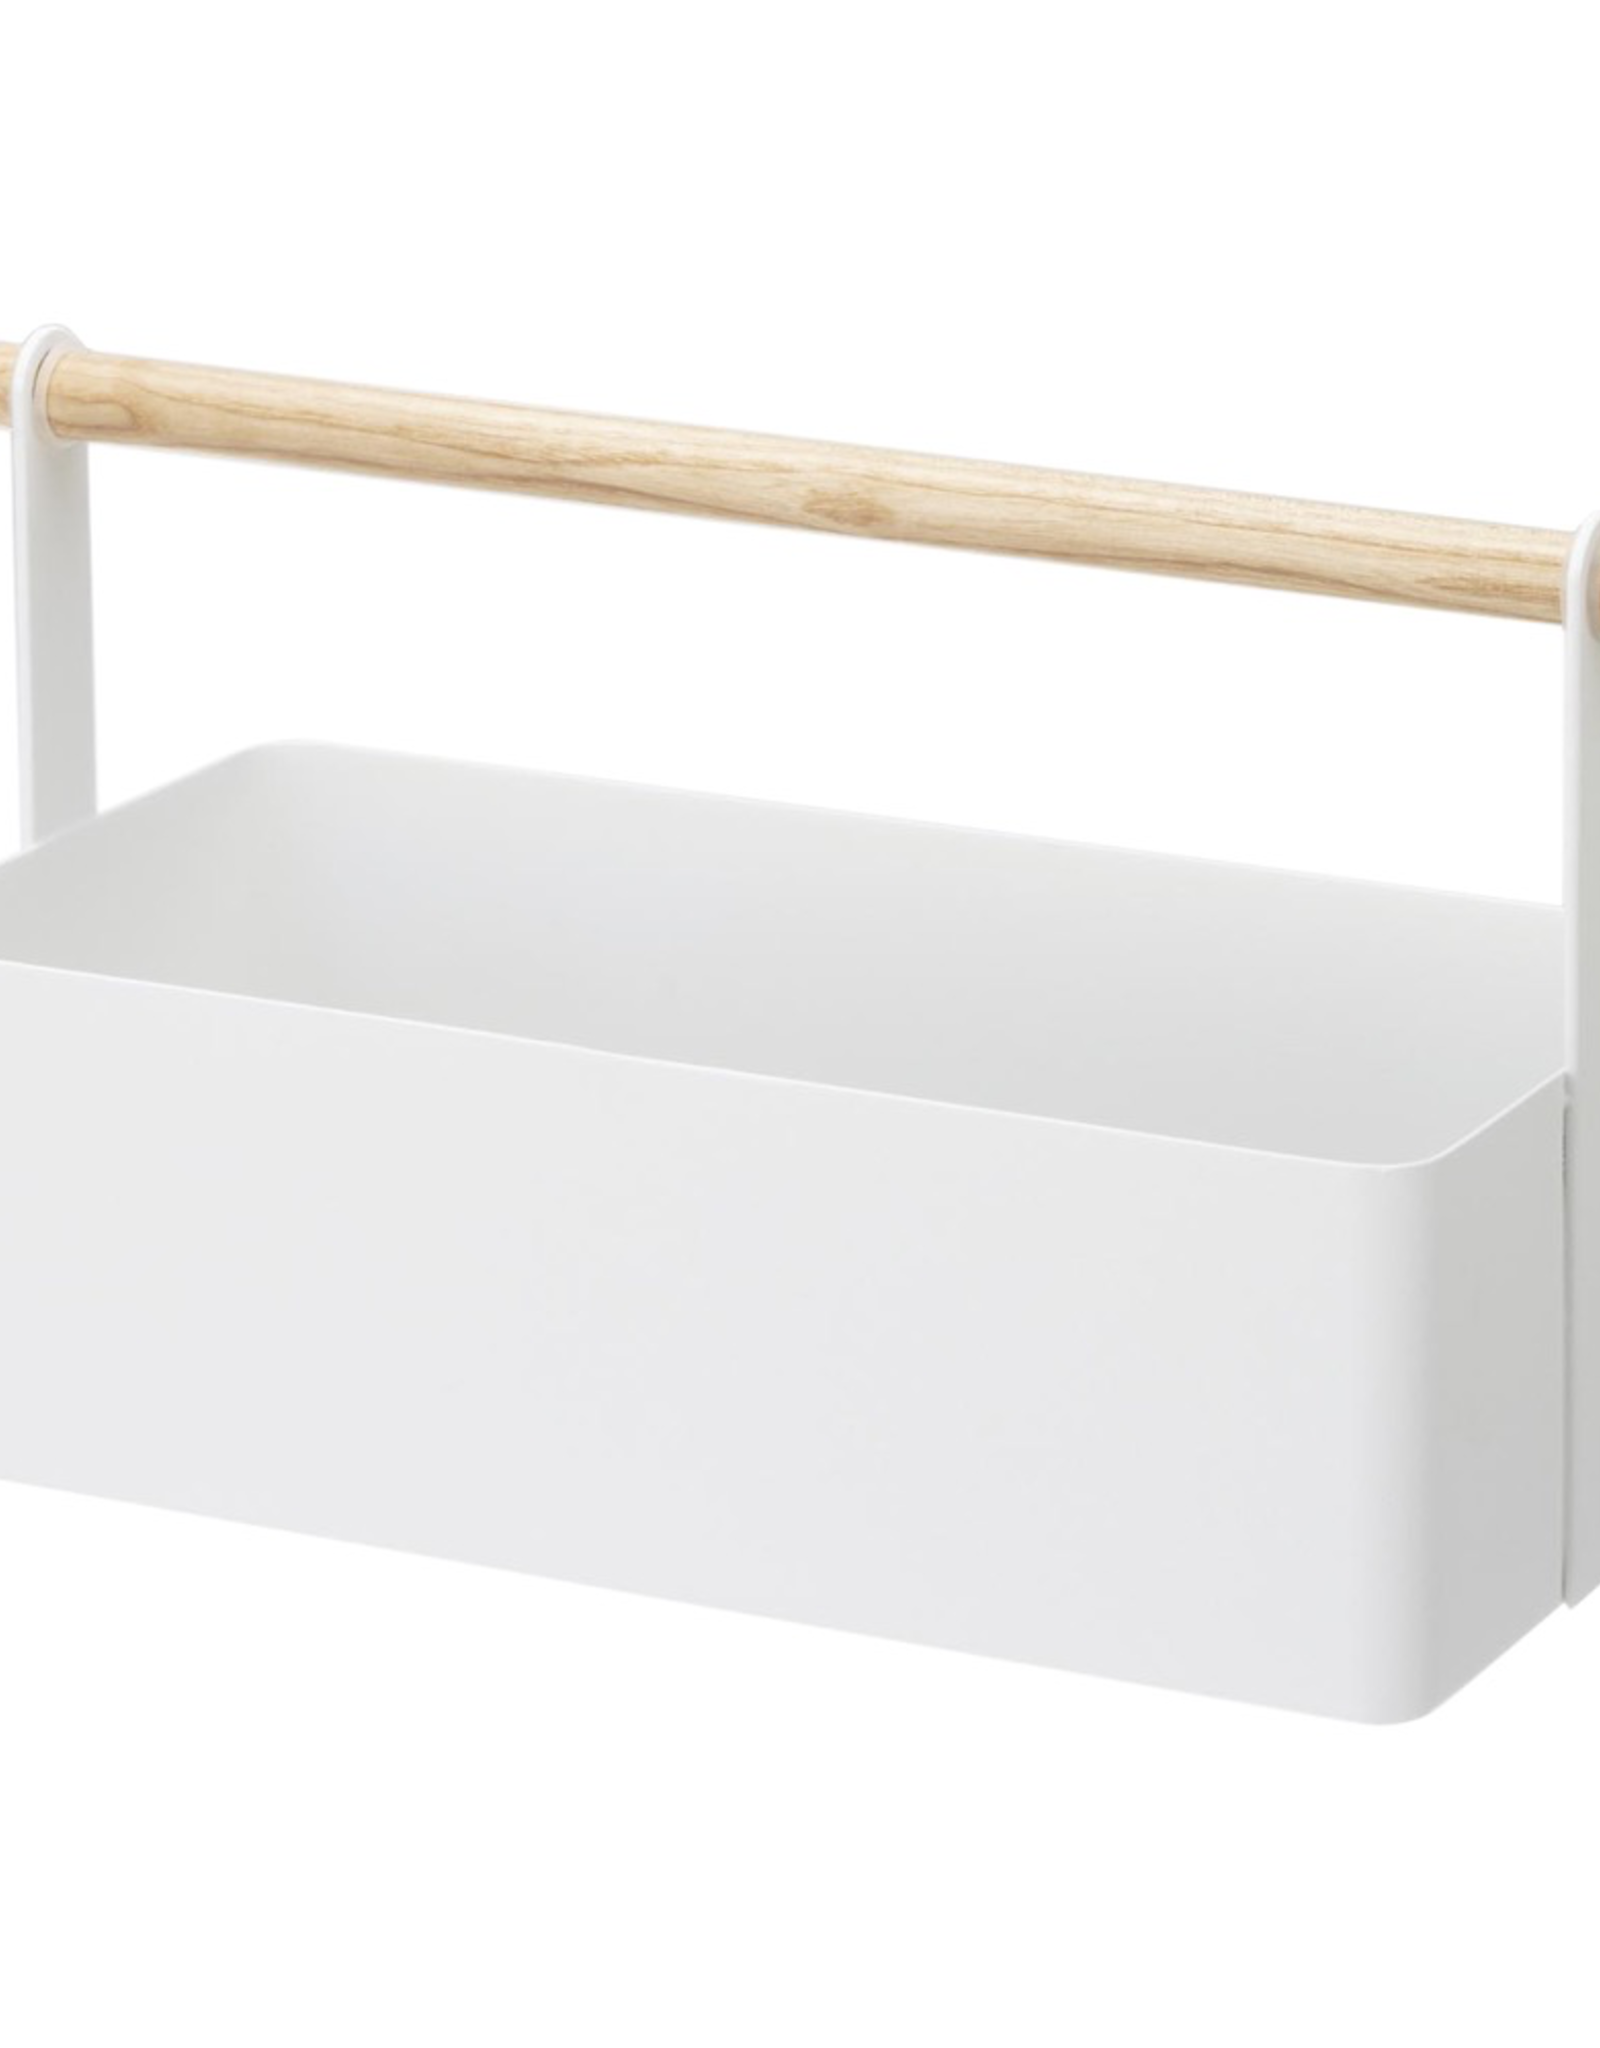 Tool Caddy, Rosca, White Metal with Wood Handle, Large